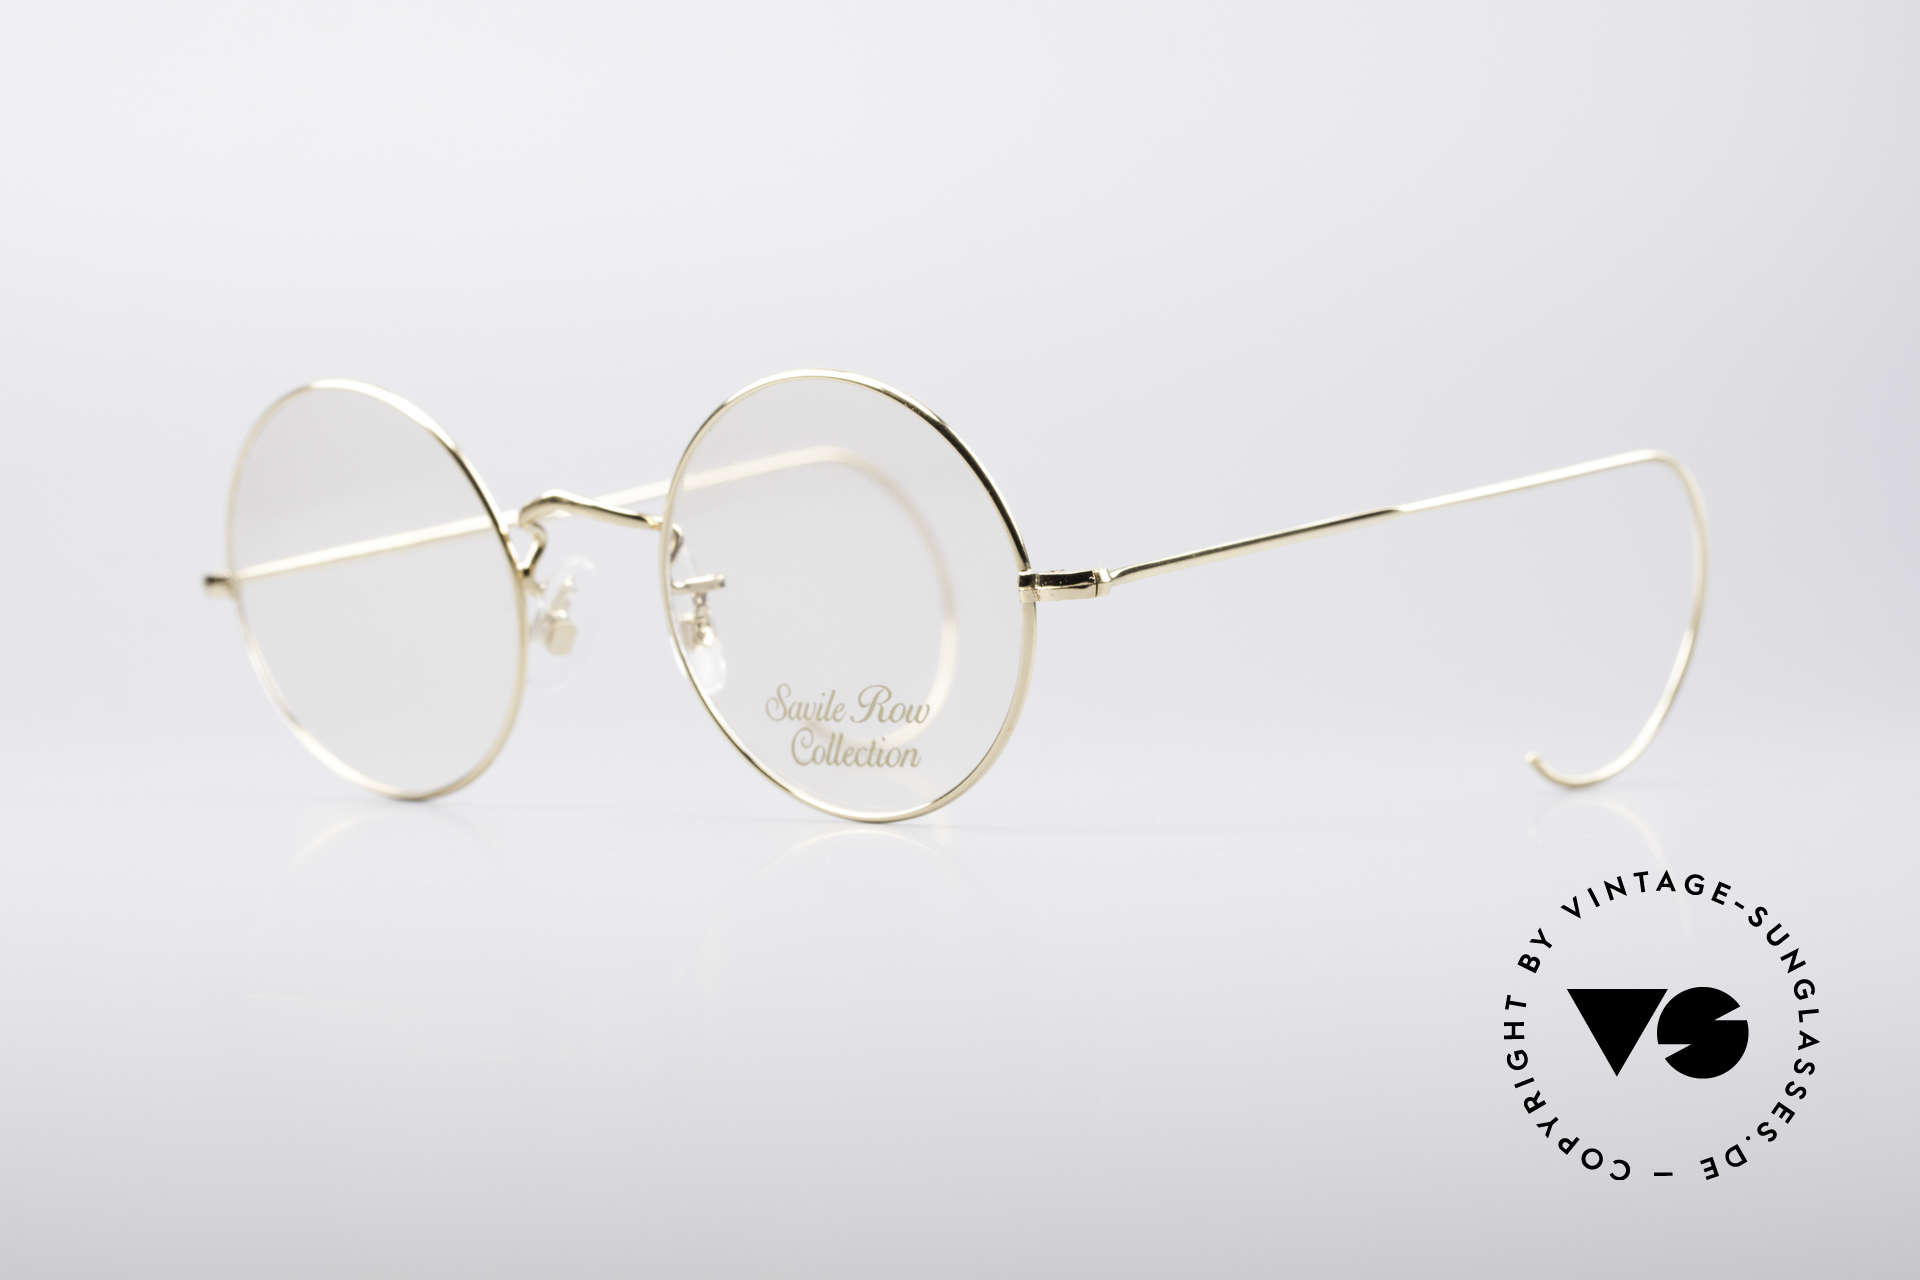 Savile Row Round 44/20 14kt Gold Frame, finest manufacturing (handmade in England, UK), Made for Men and Women